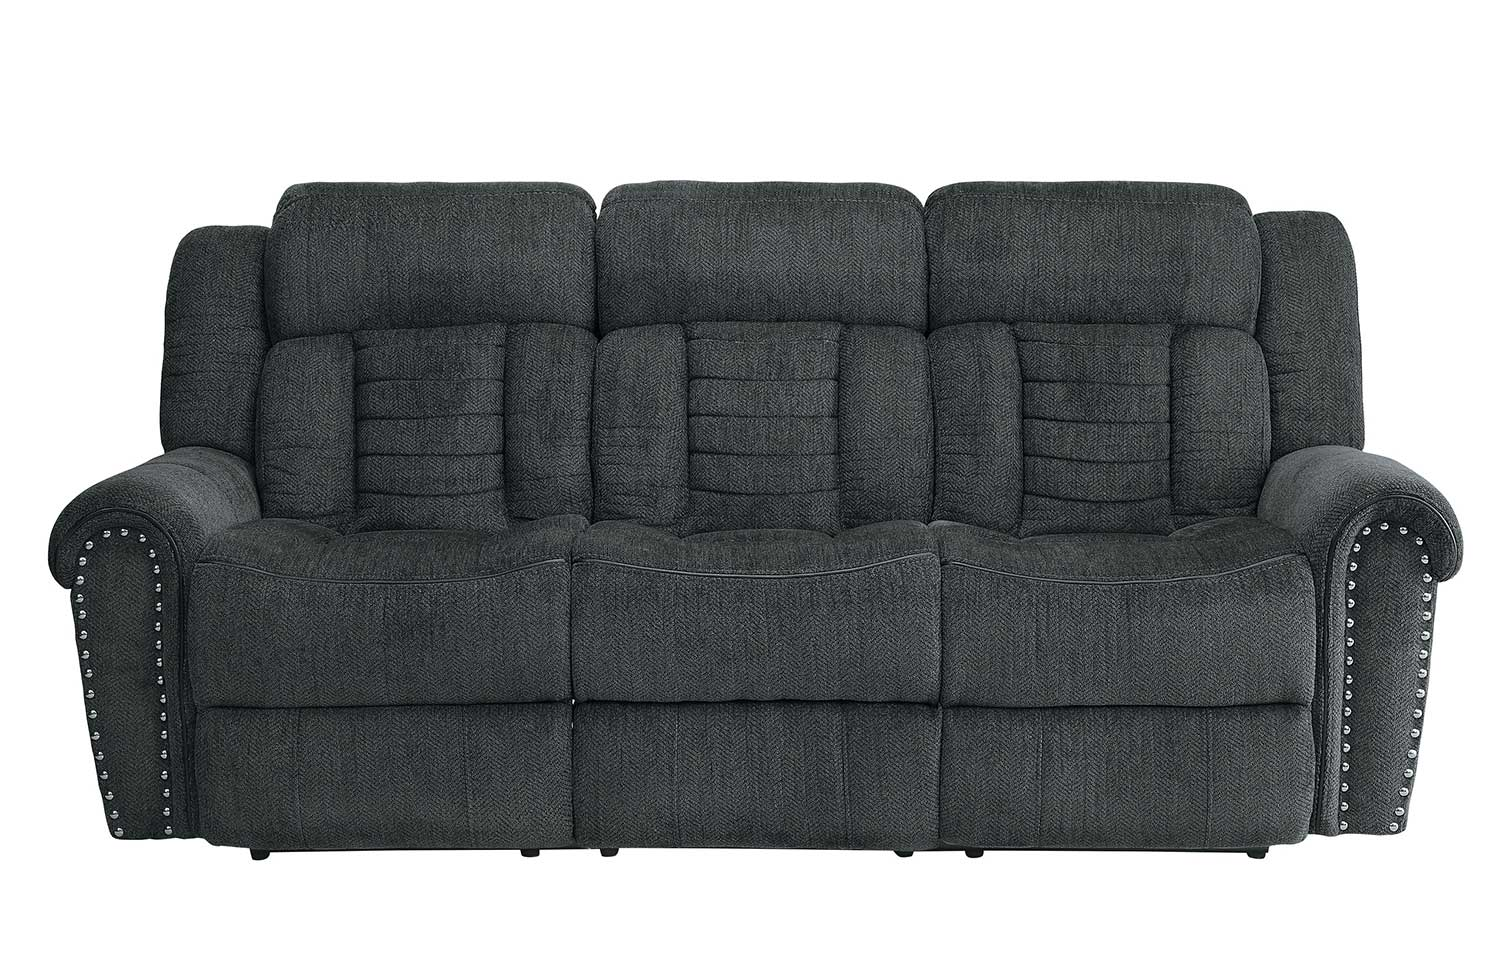 Homelegance Nutmeg Double Reclining Sofa - Charcoal Gray